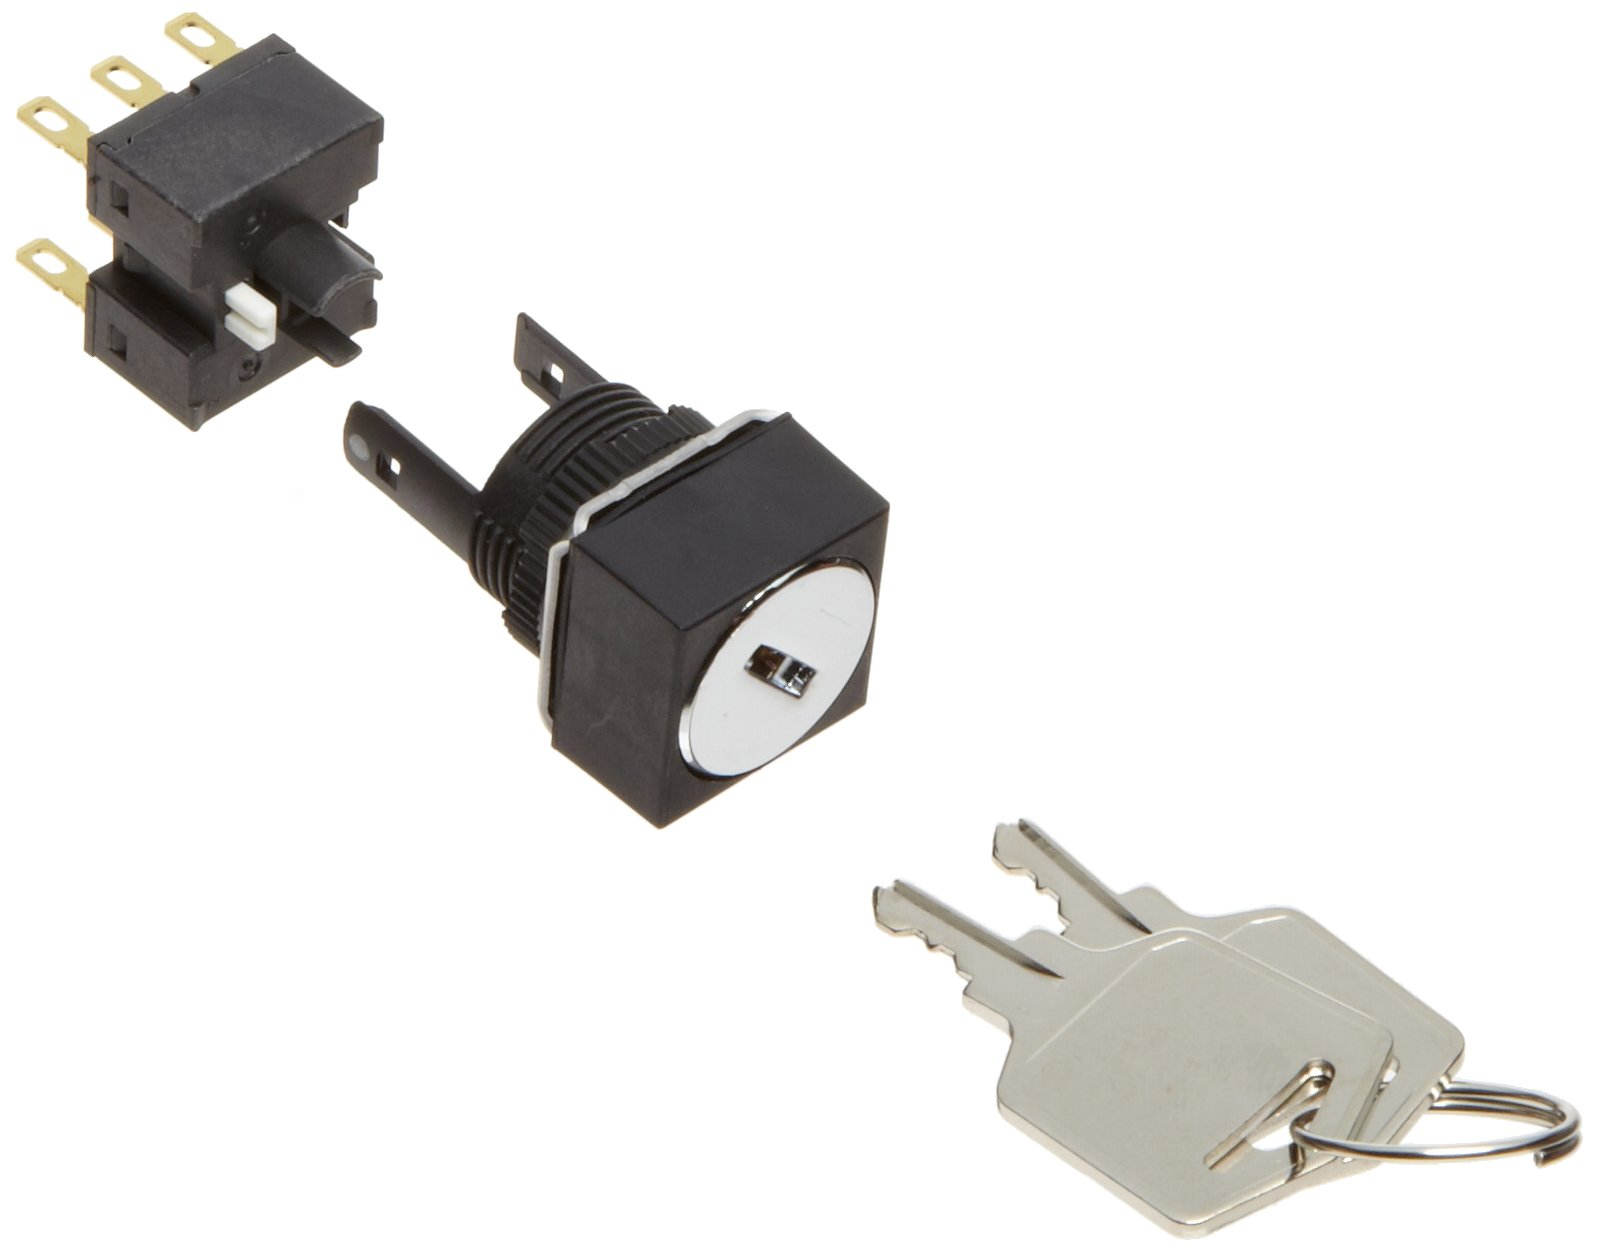 Omron A165K-A2MR-2 Key Type Selector and Switch, Solder Terminal, IP65 Oil Resistant, 16mm Mounting Aperture, 2 Notches, Manual Reset Method, Right Key Release Postion, Square,Double Pole Double Throw Contacts